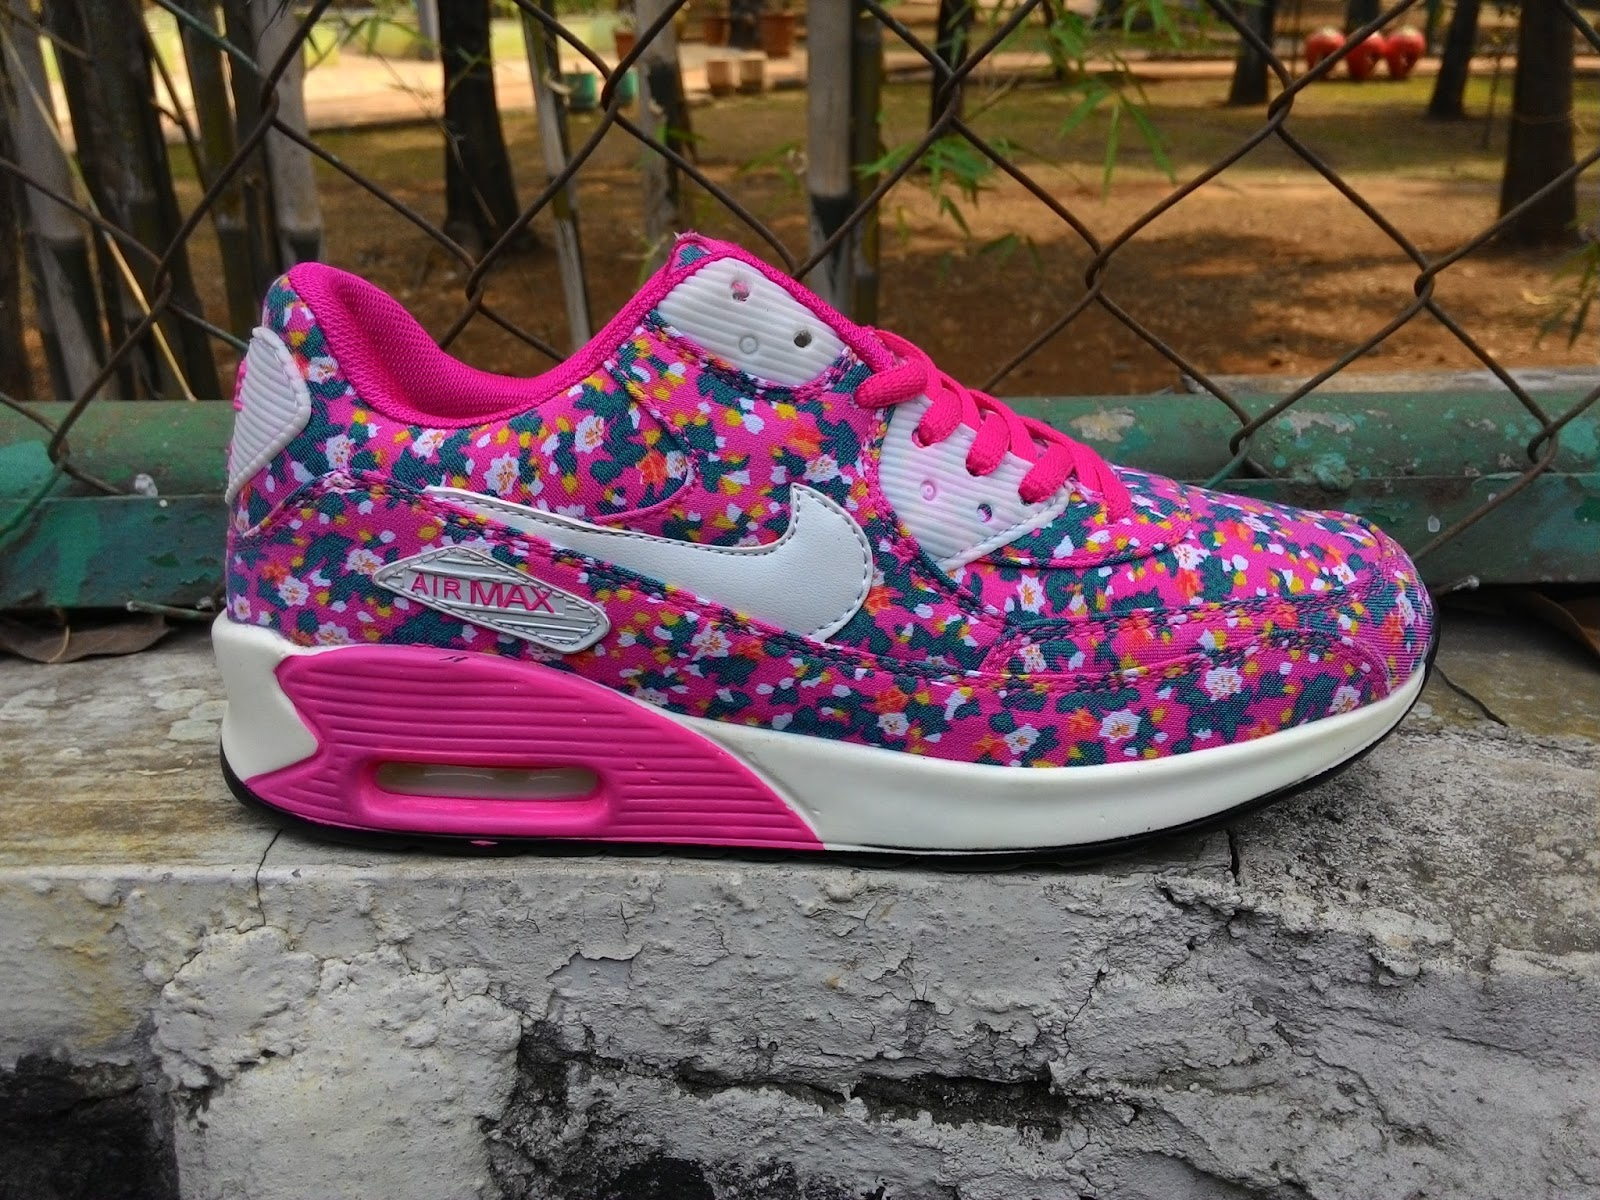 usa nike air max 2015 kw super 33df6 e3ab1  best toko online murah toko  online terpercaya toko online jakarta toko online indonesia nike unveils  more 89cb9e0f81